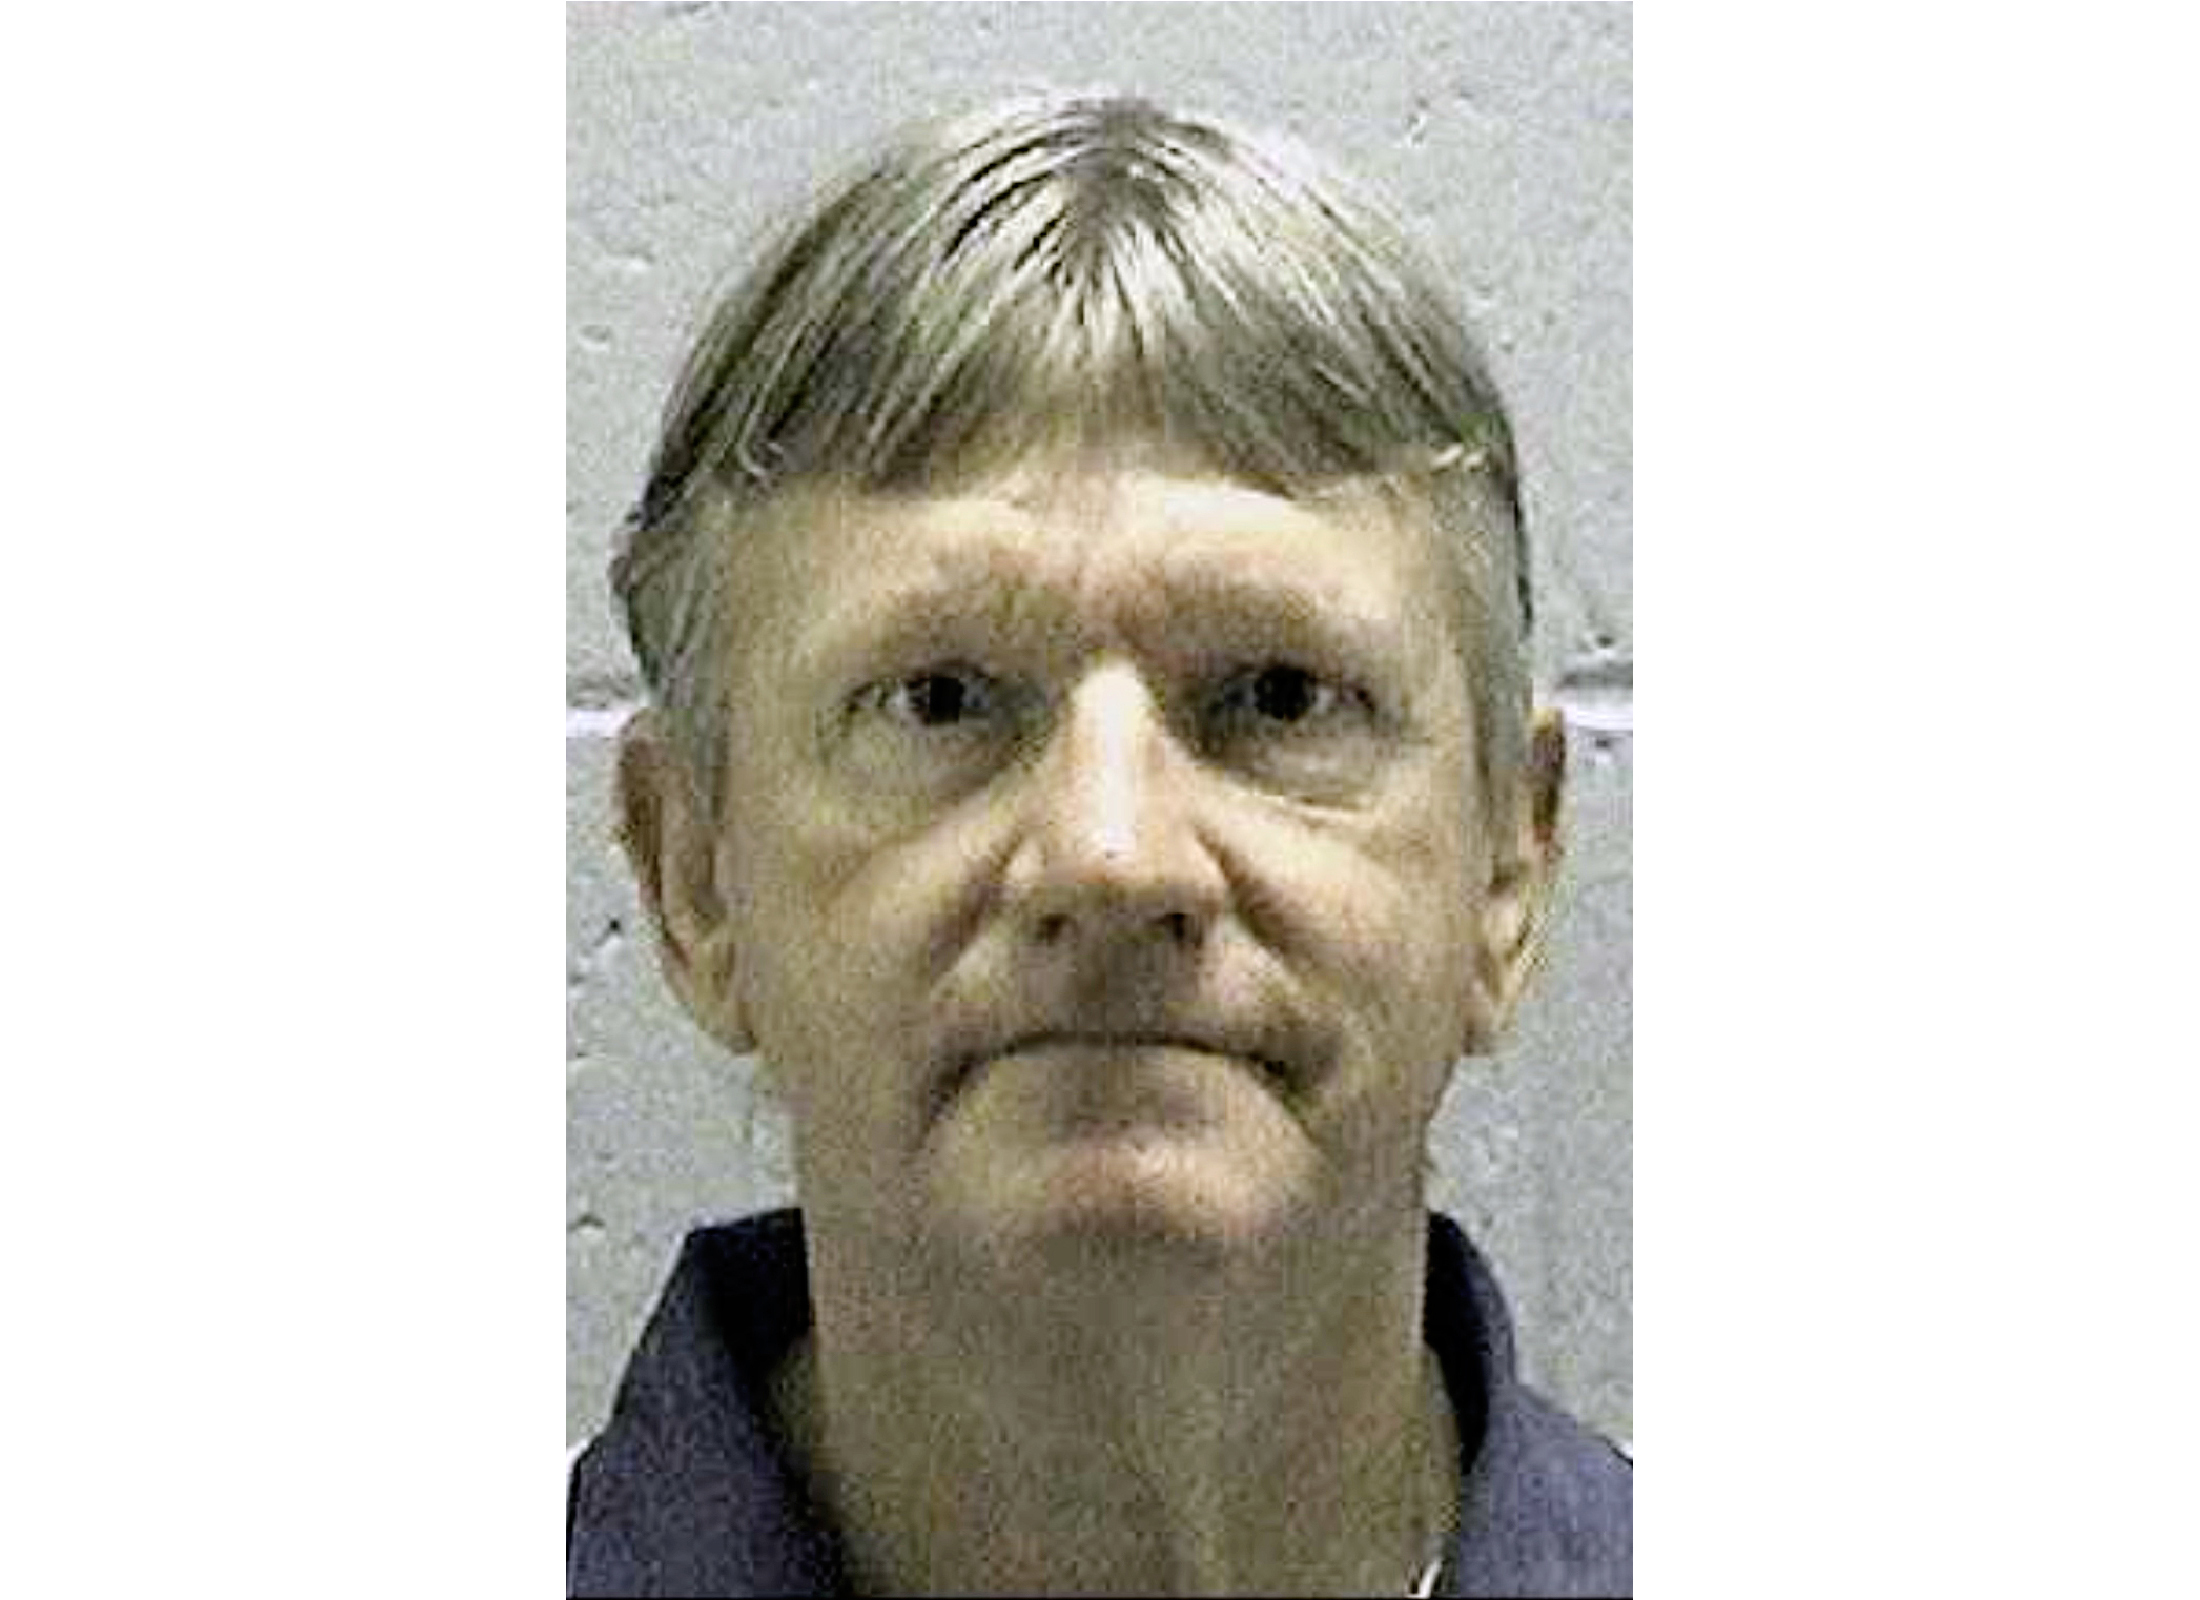 This undated file photo released by the Georgia Department of Corrections shows death row inmate Donnie Cleveland Lance, who was convicted of killing his ex-wife and her boyfriend more than 20 years ago.